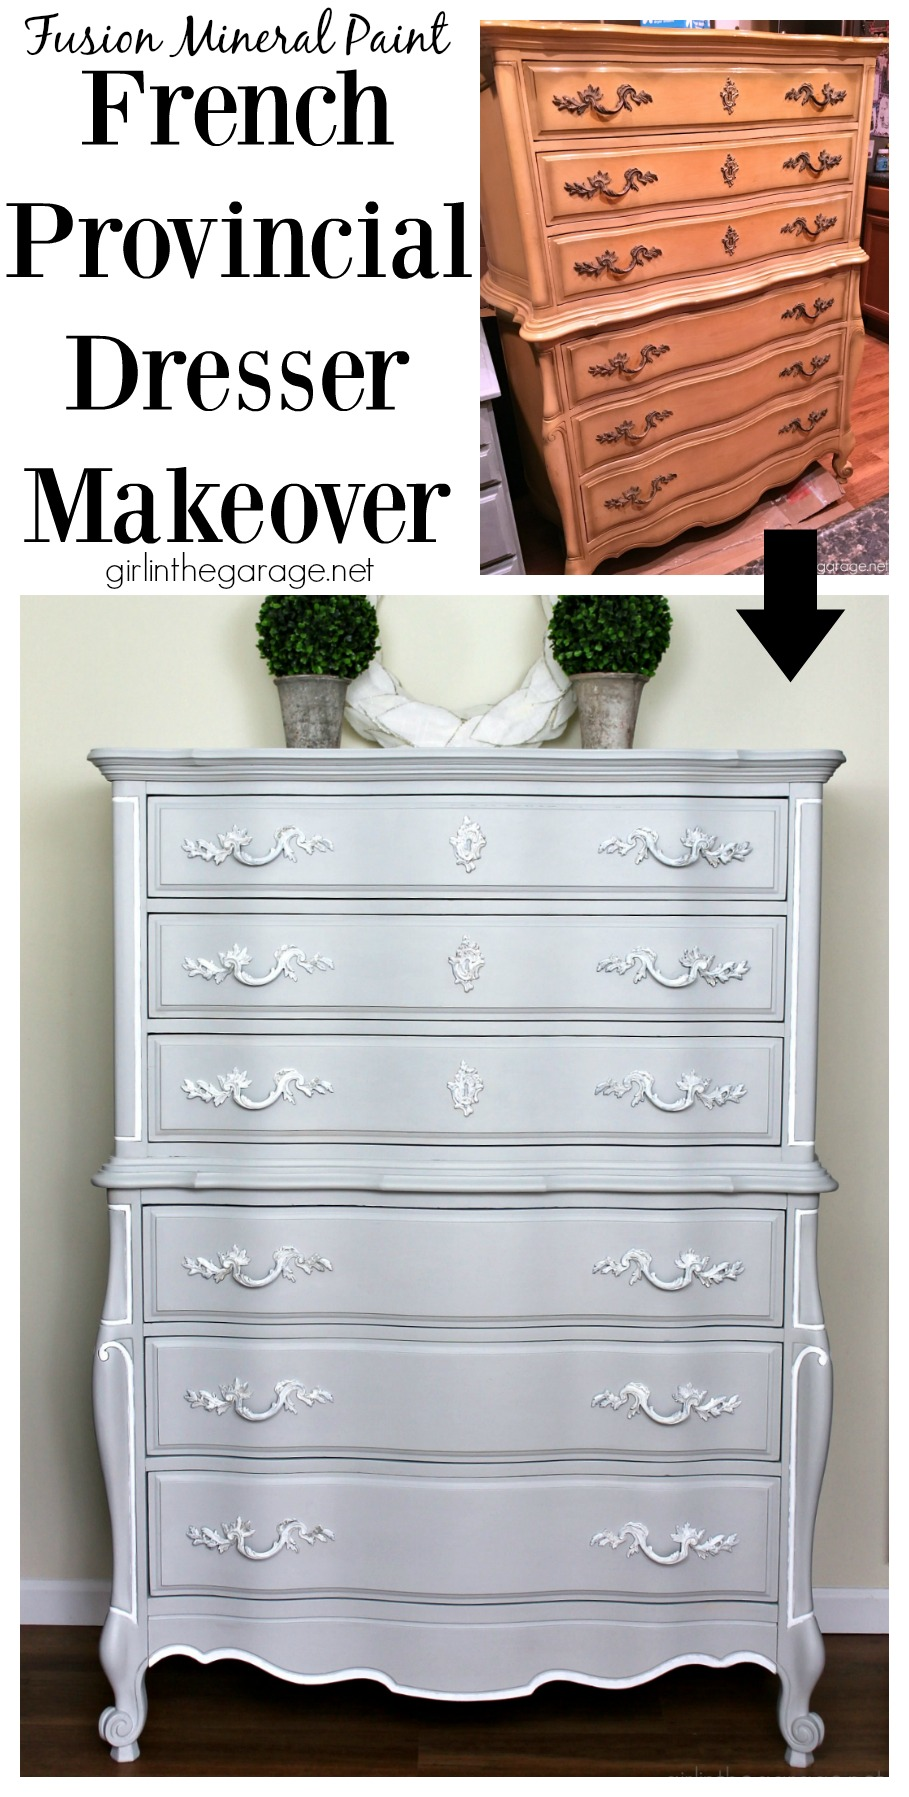 French Provincial Dresser Makeover Beast to Beauty   Girl in the ...